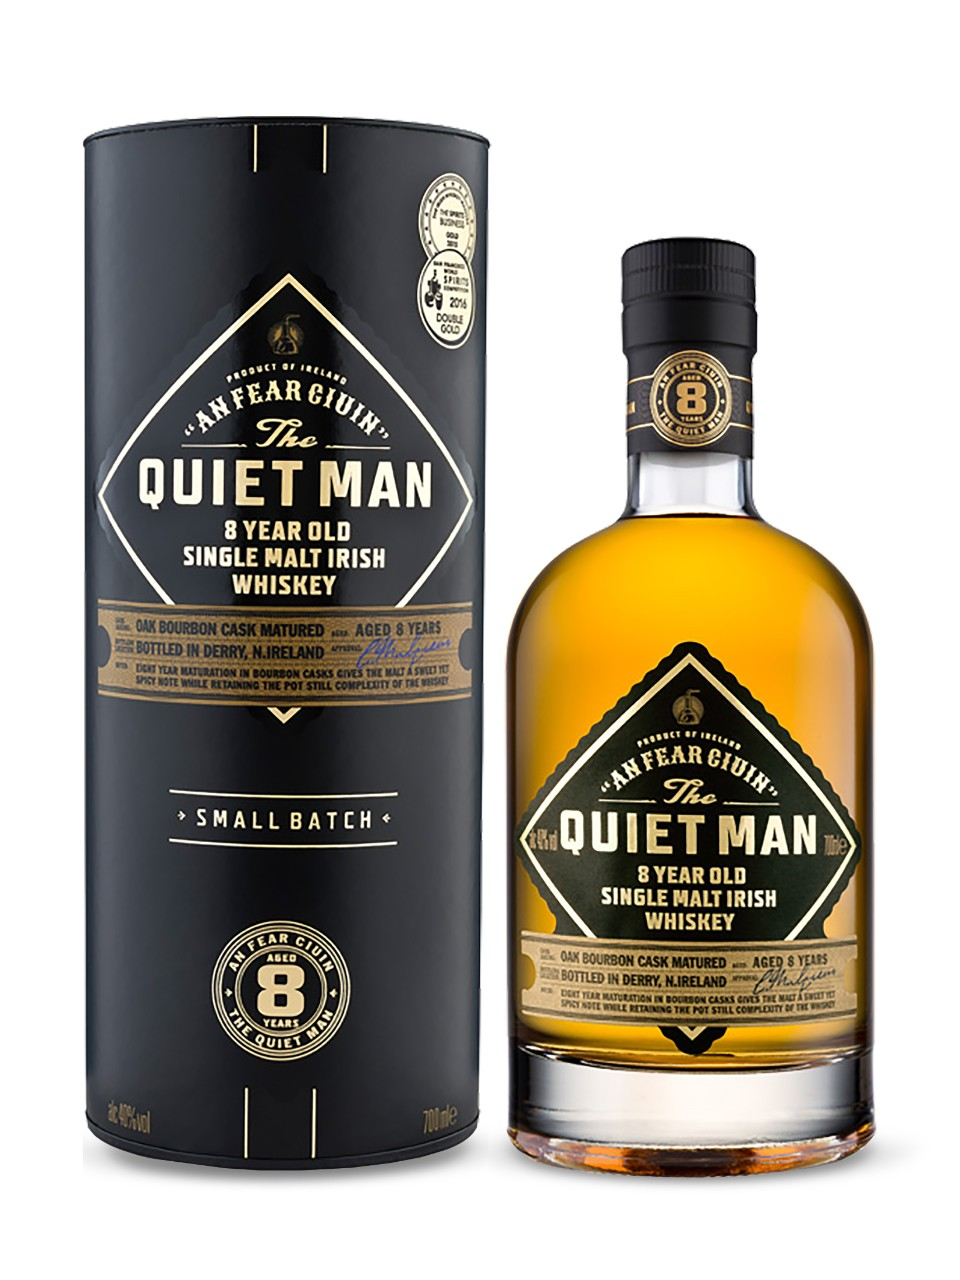 Image for The Quiet Man 8 Year Old Single Malt Irish Whiskey from LCBO